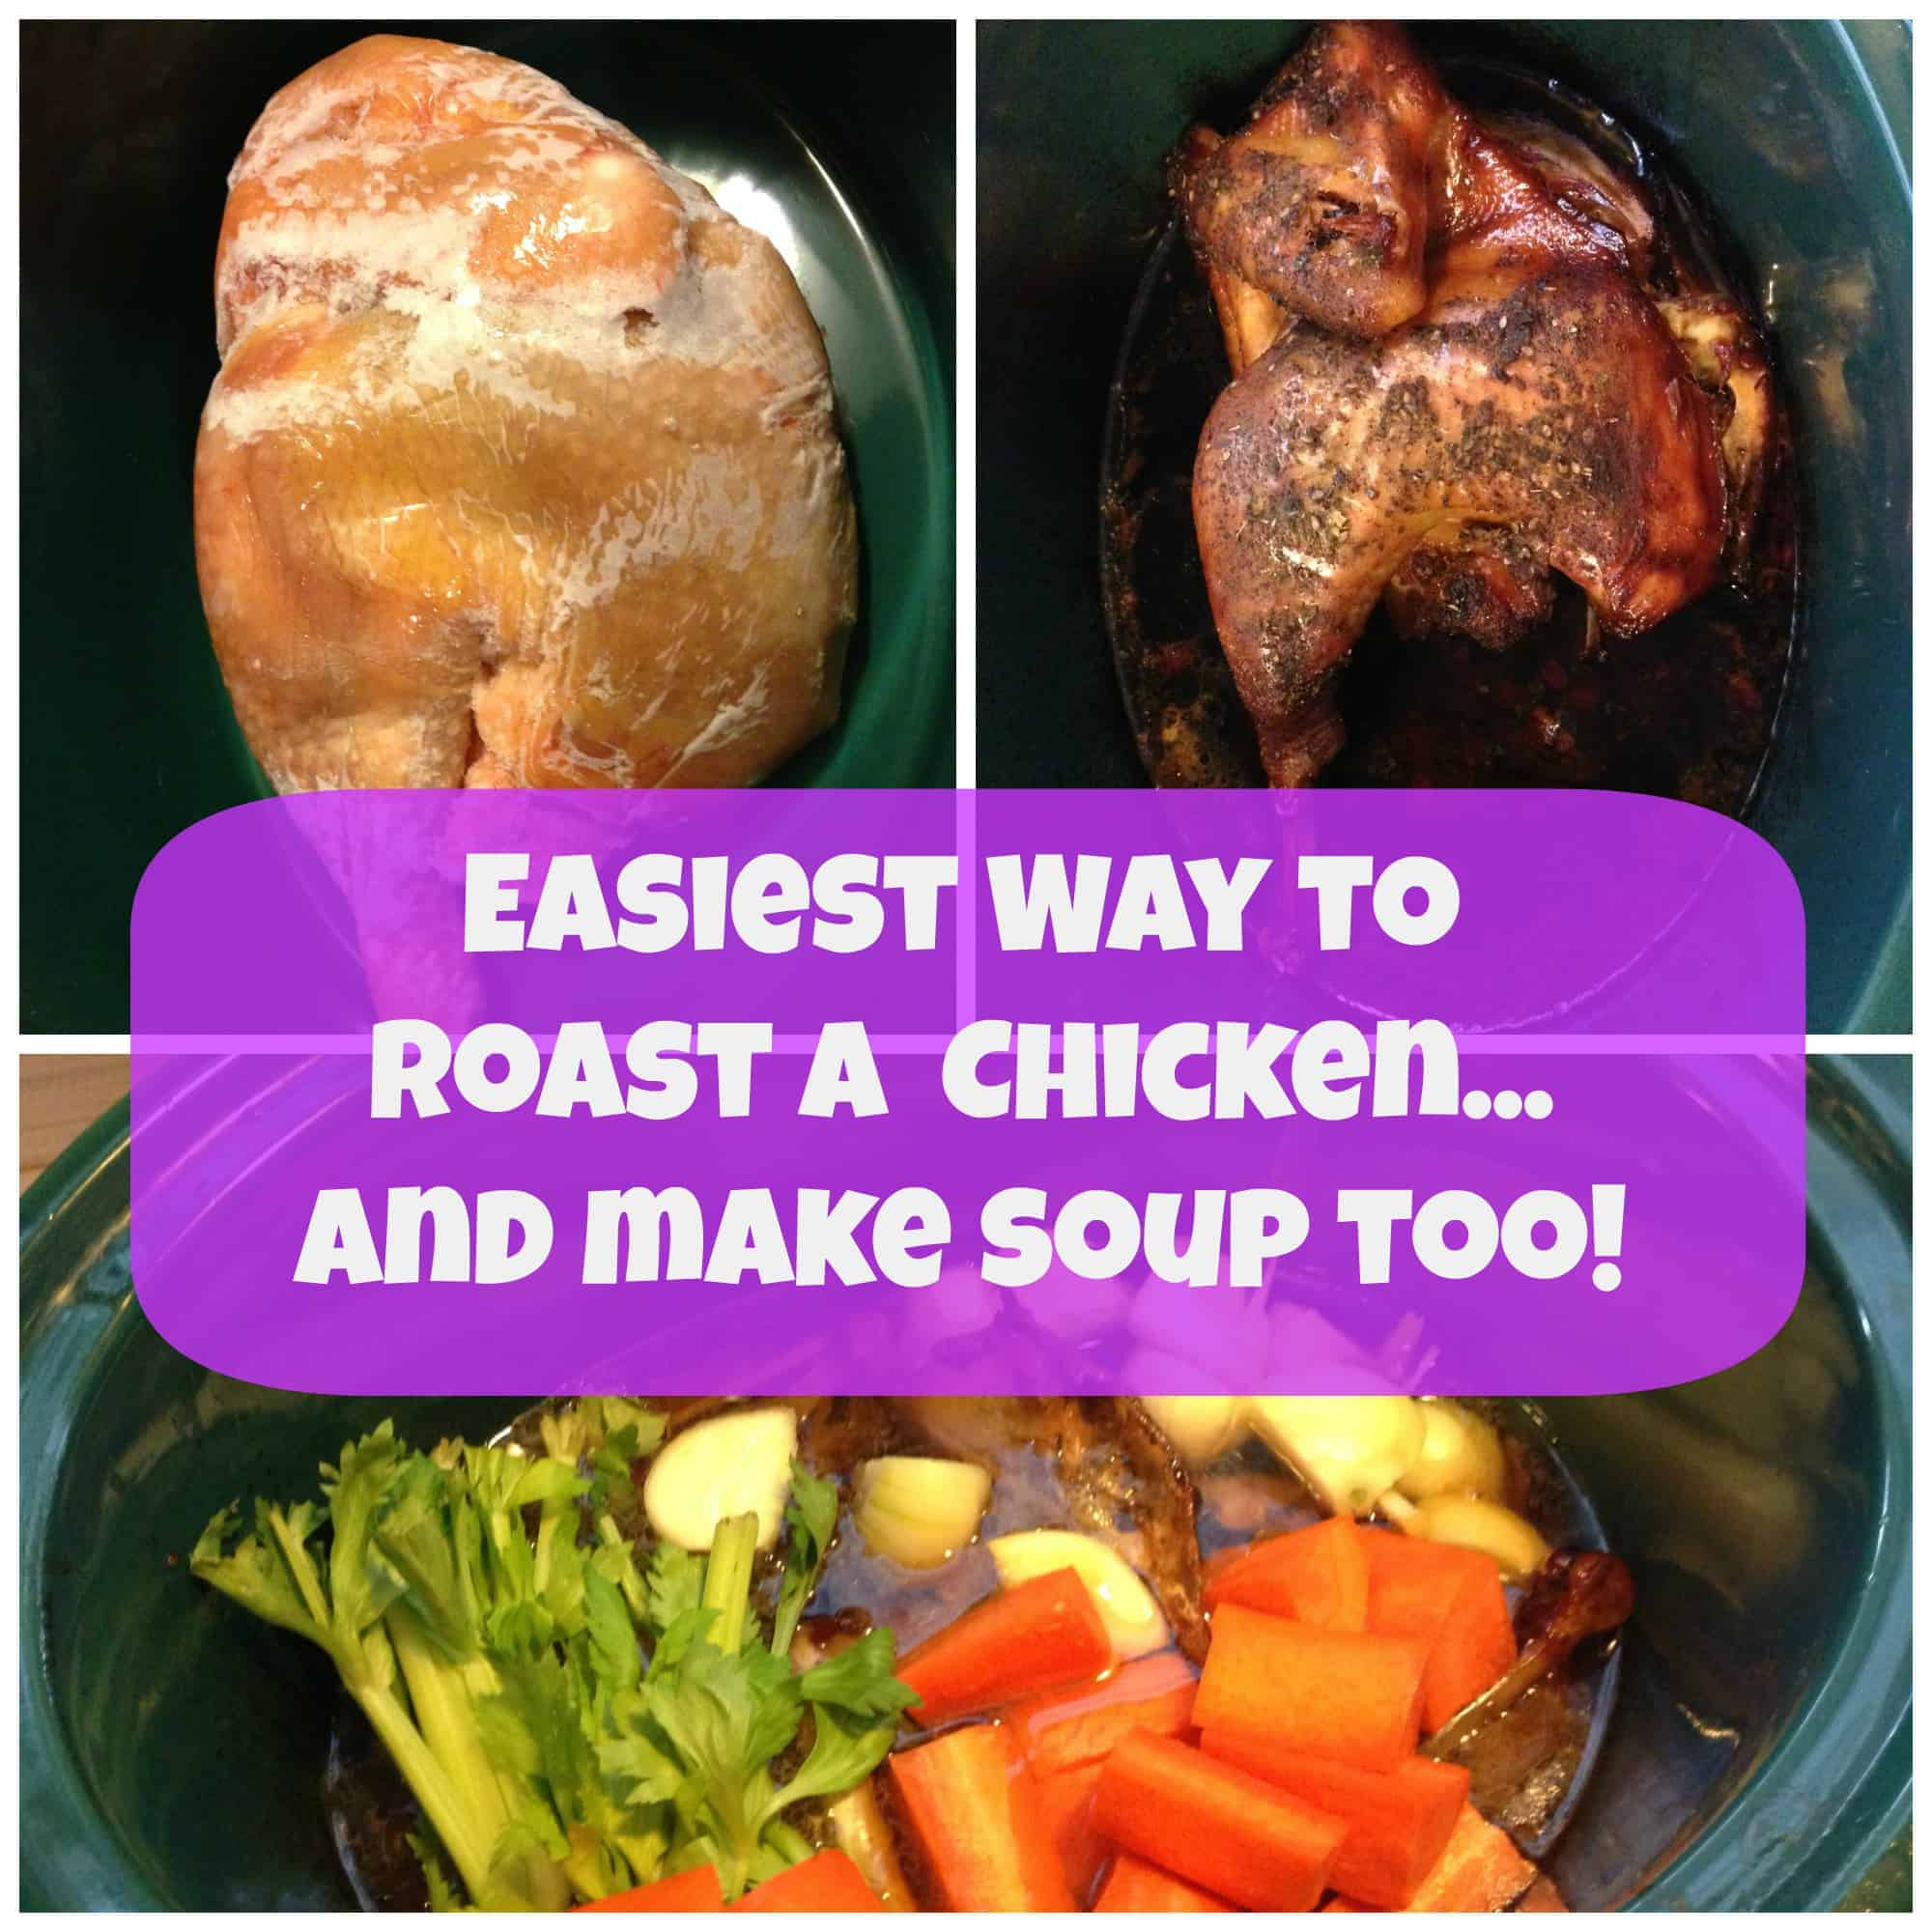 Easiest Roast Chicken and Soup!